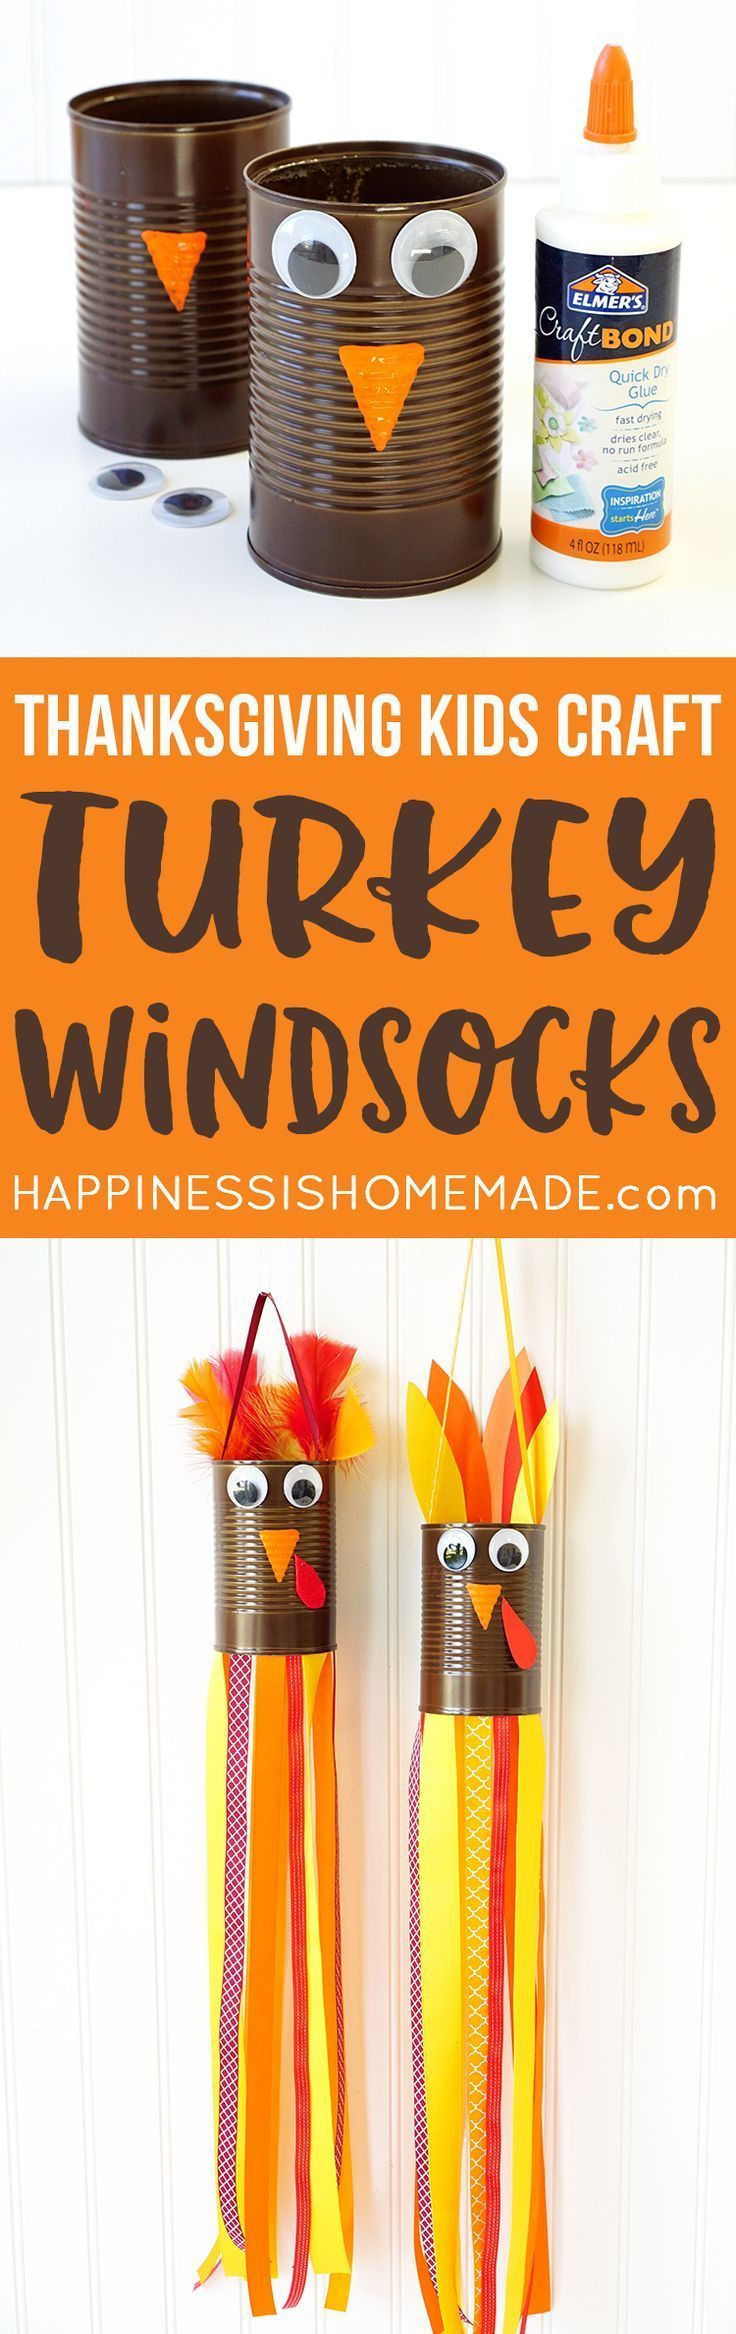 Thanksgiving Kids Craft: Turkey Windsocks - Need a quick and easy Thanksgiving kids craft? These adorable turkey windsocks made from a recycled tin can, ribbon, Elmer's glue, and crafty odds and ends are the cutest Thanksgiving turkeys around! #sponsored Note: I would use construction paper instead of tin can.